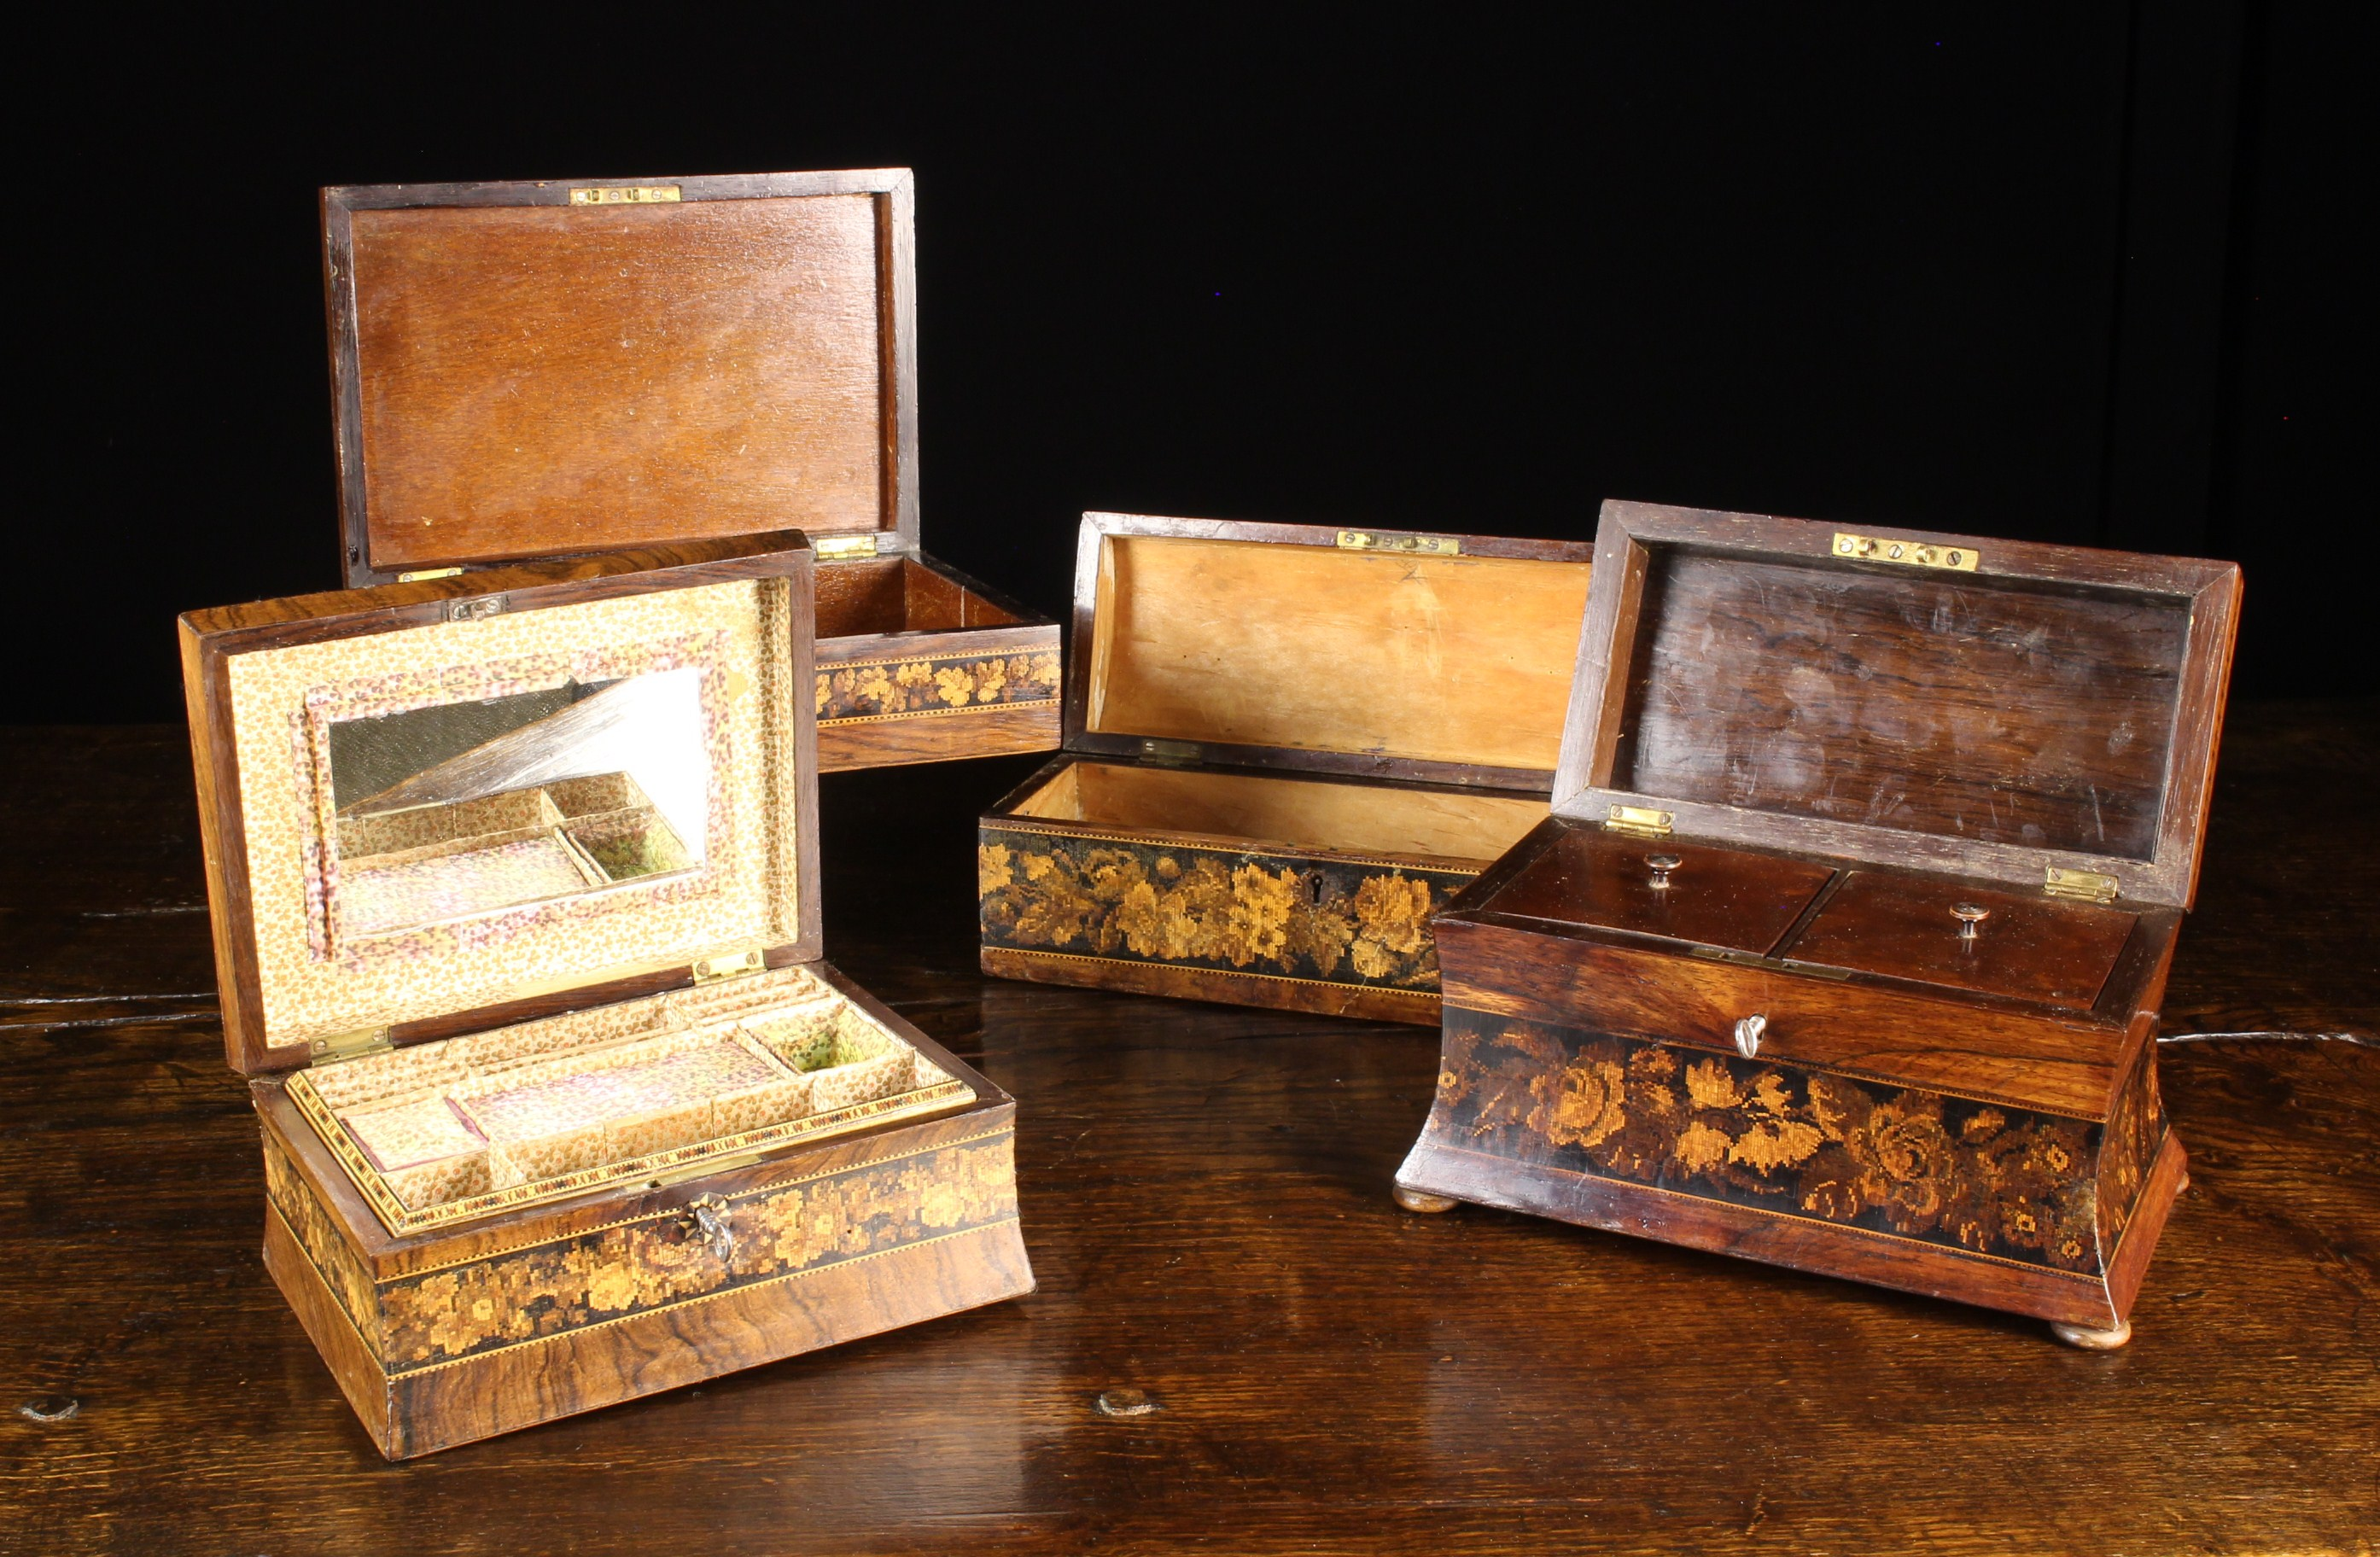 A Group of Four Victorian Tunbridge Ware Boxes intricately inlaid with micro-mosaic wooden tesserae - Image 2 of 2